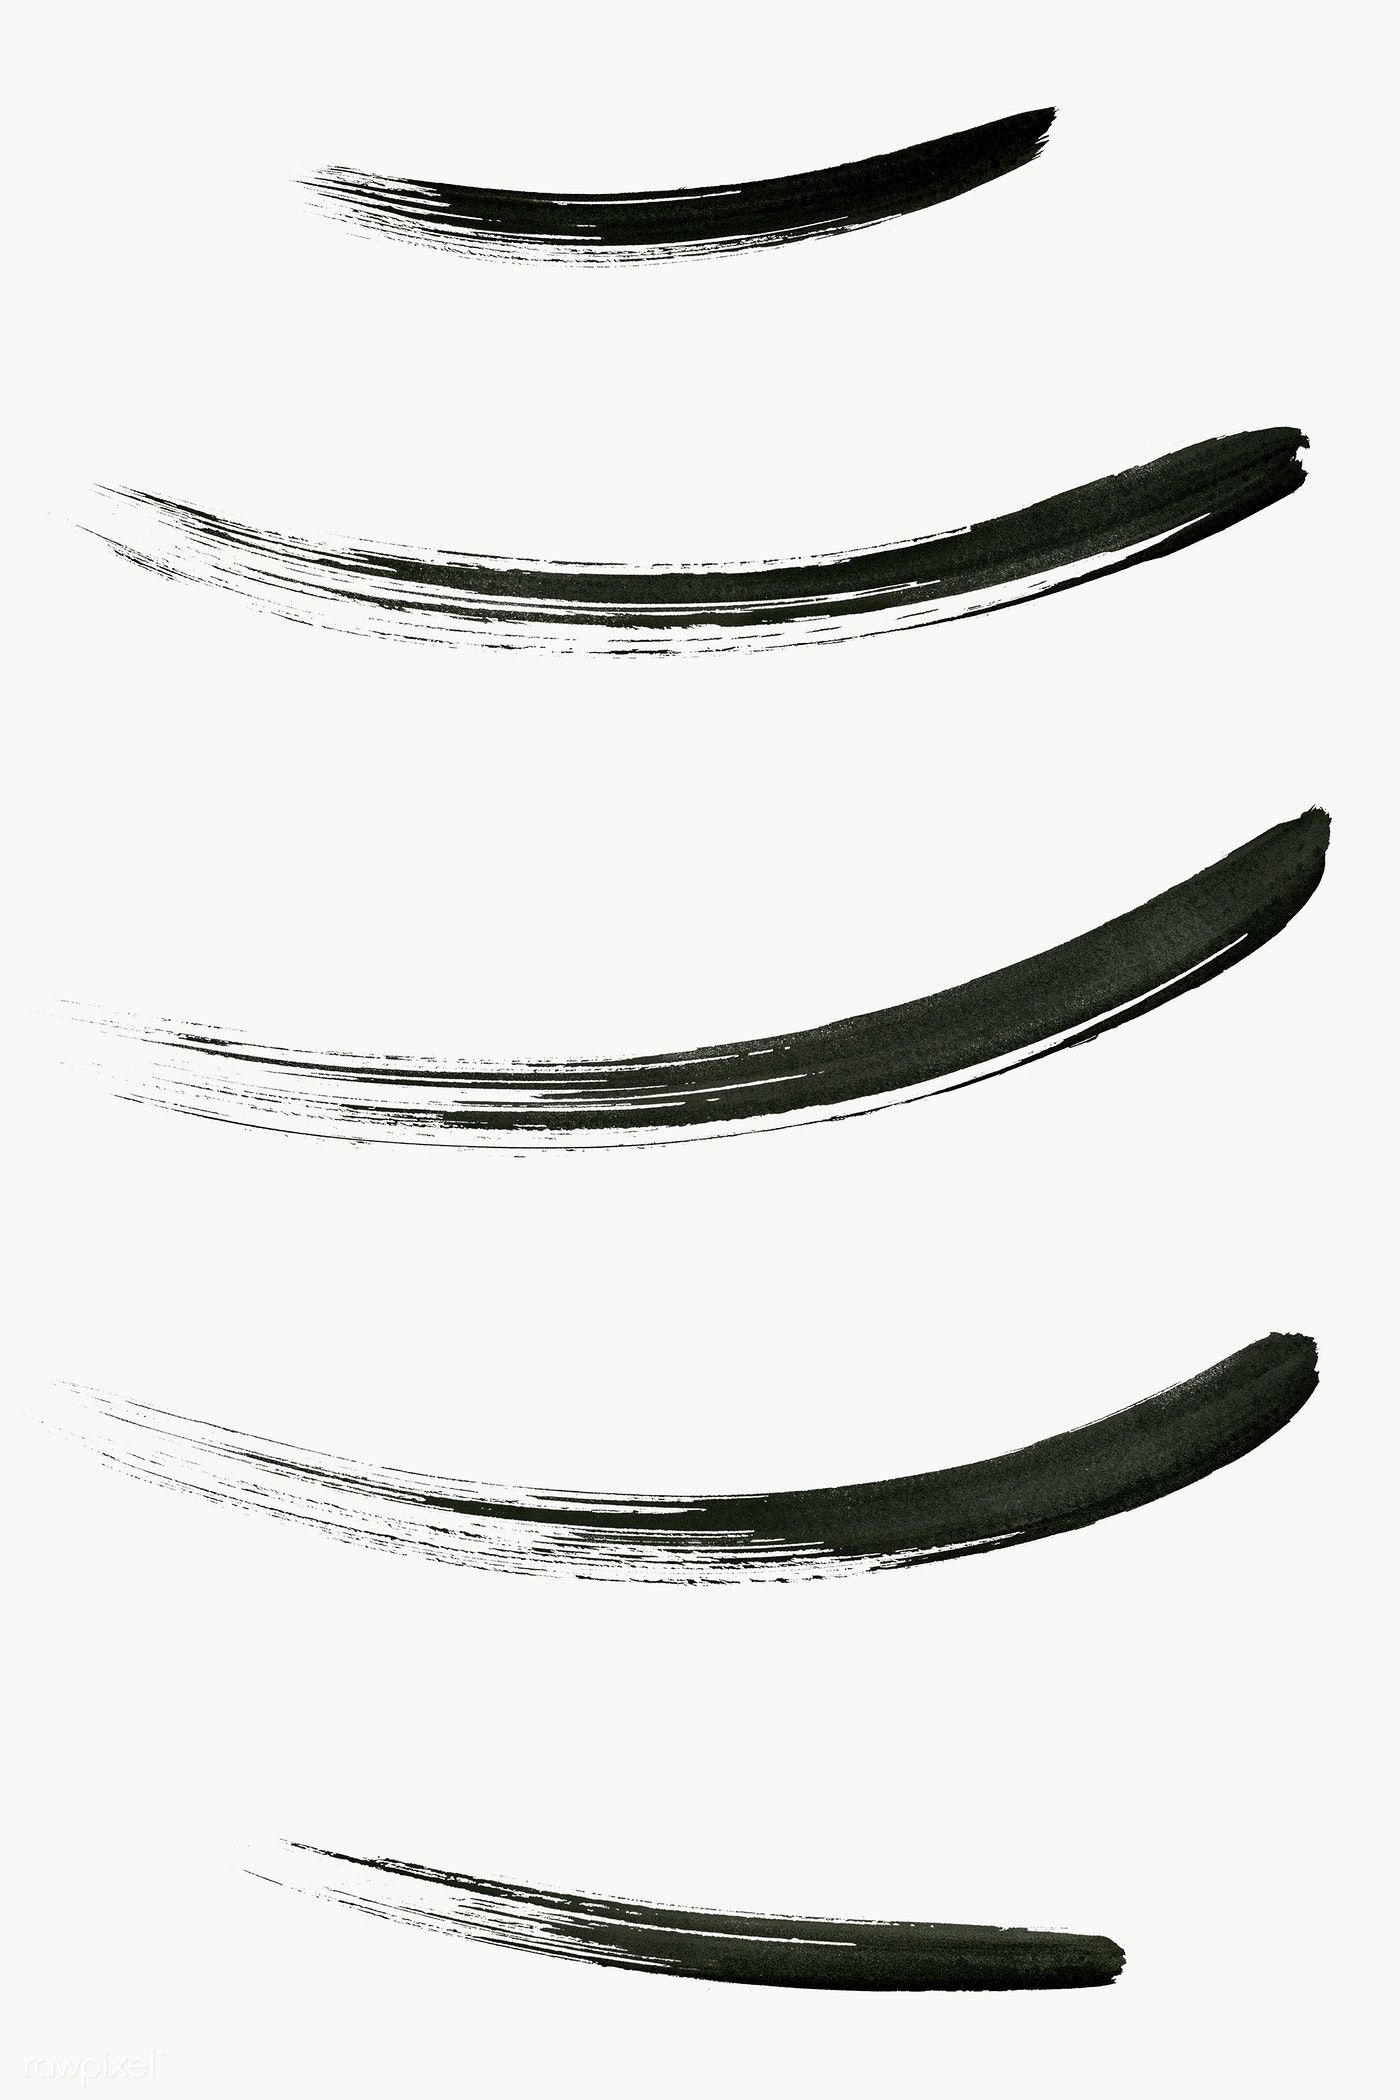 Abstract Black Brush Stroke Set Transparent Png Free Image By Rawpixel Com Aew Brush Strokes Brush Stroke Vector Abstract